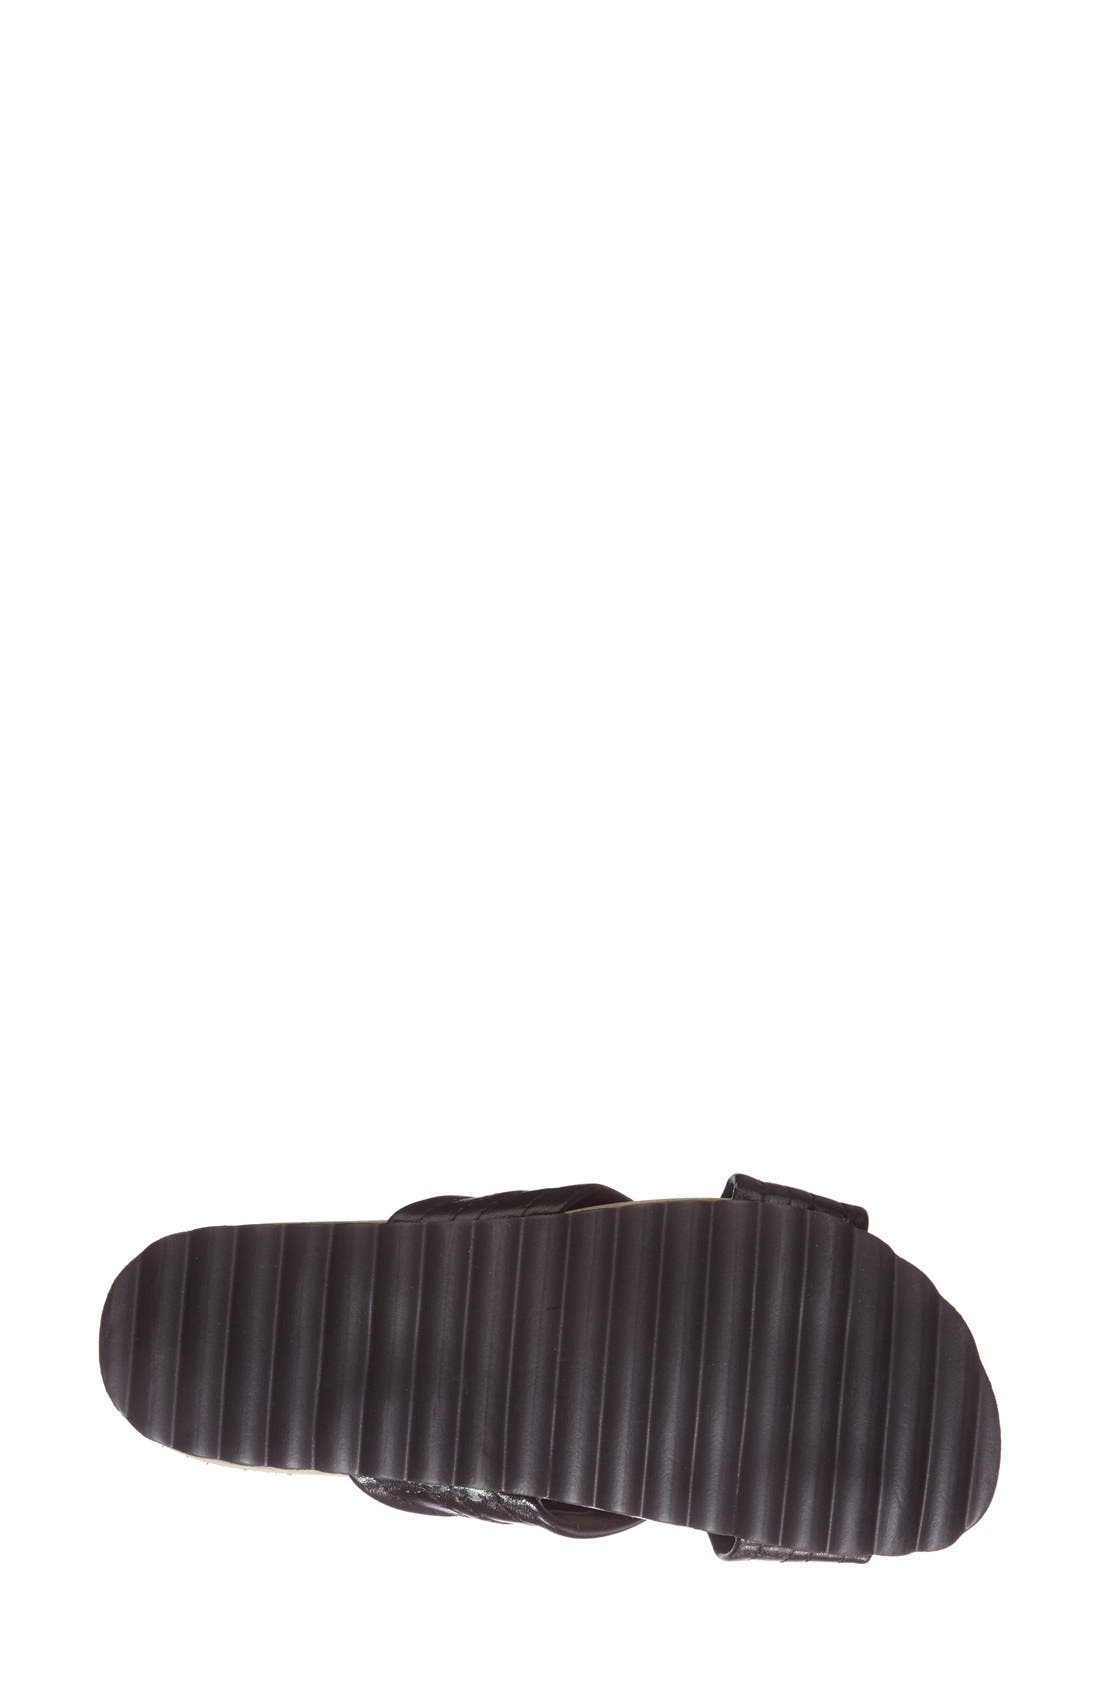 Alternate Image 4  - Dune London 'Jolenes' Leather Slide Sandal (Women)